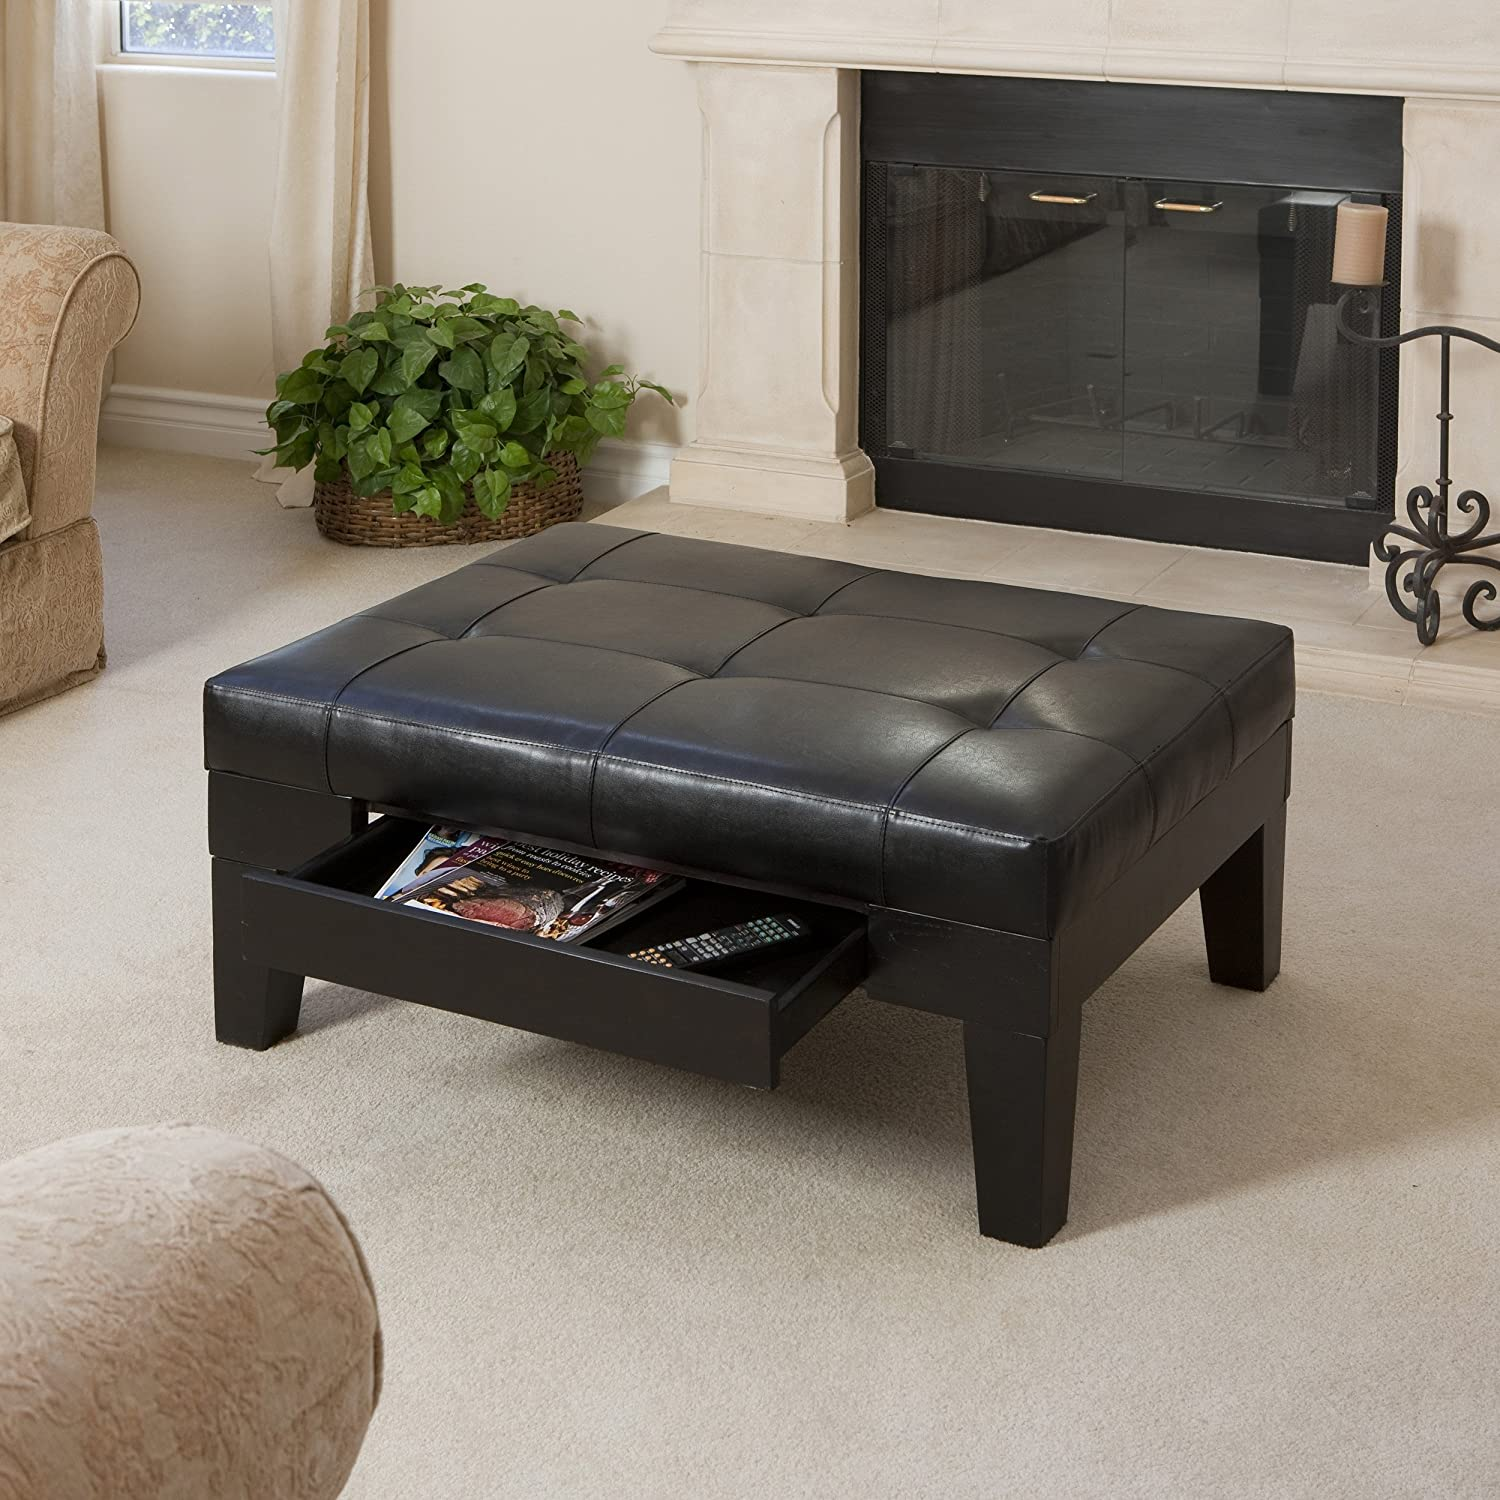 Amazon Tucson Black Leather Tufted Top Coffee Table w Drawer